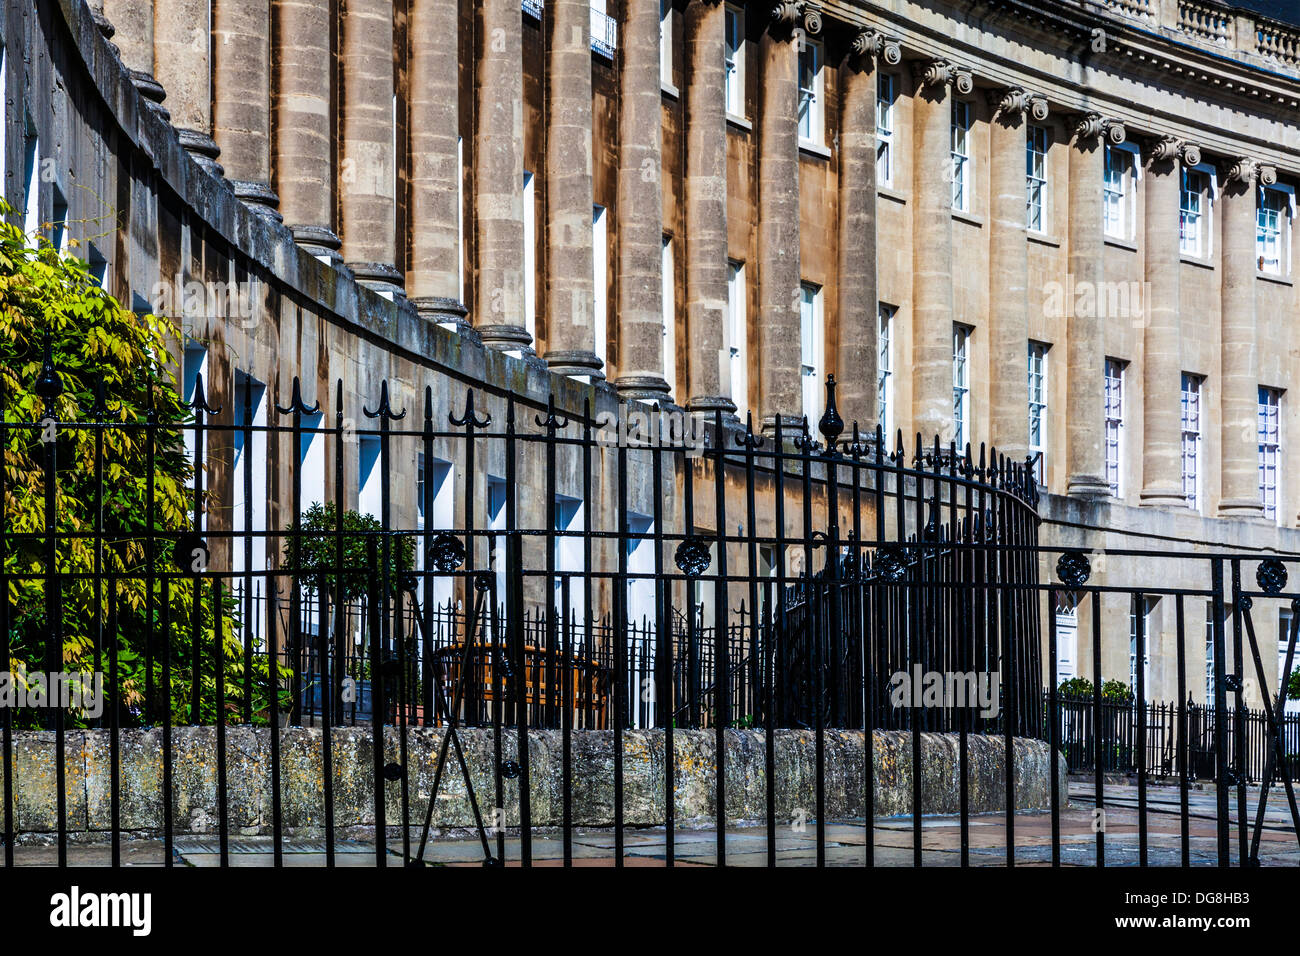 A pattern of wrought iron fence railings in front of the sweeping Georgian facade of terraced houses in The Royal Crescent, Bath - Stock Image